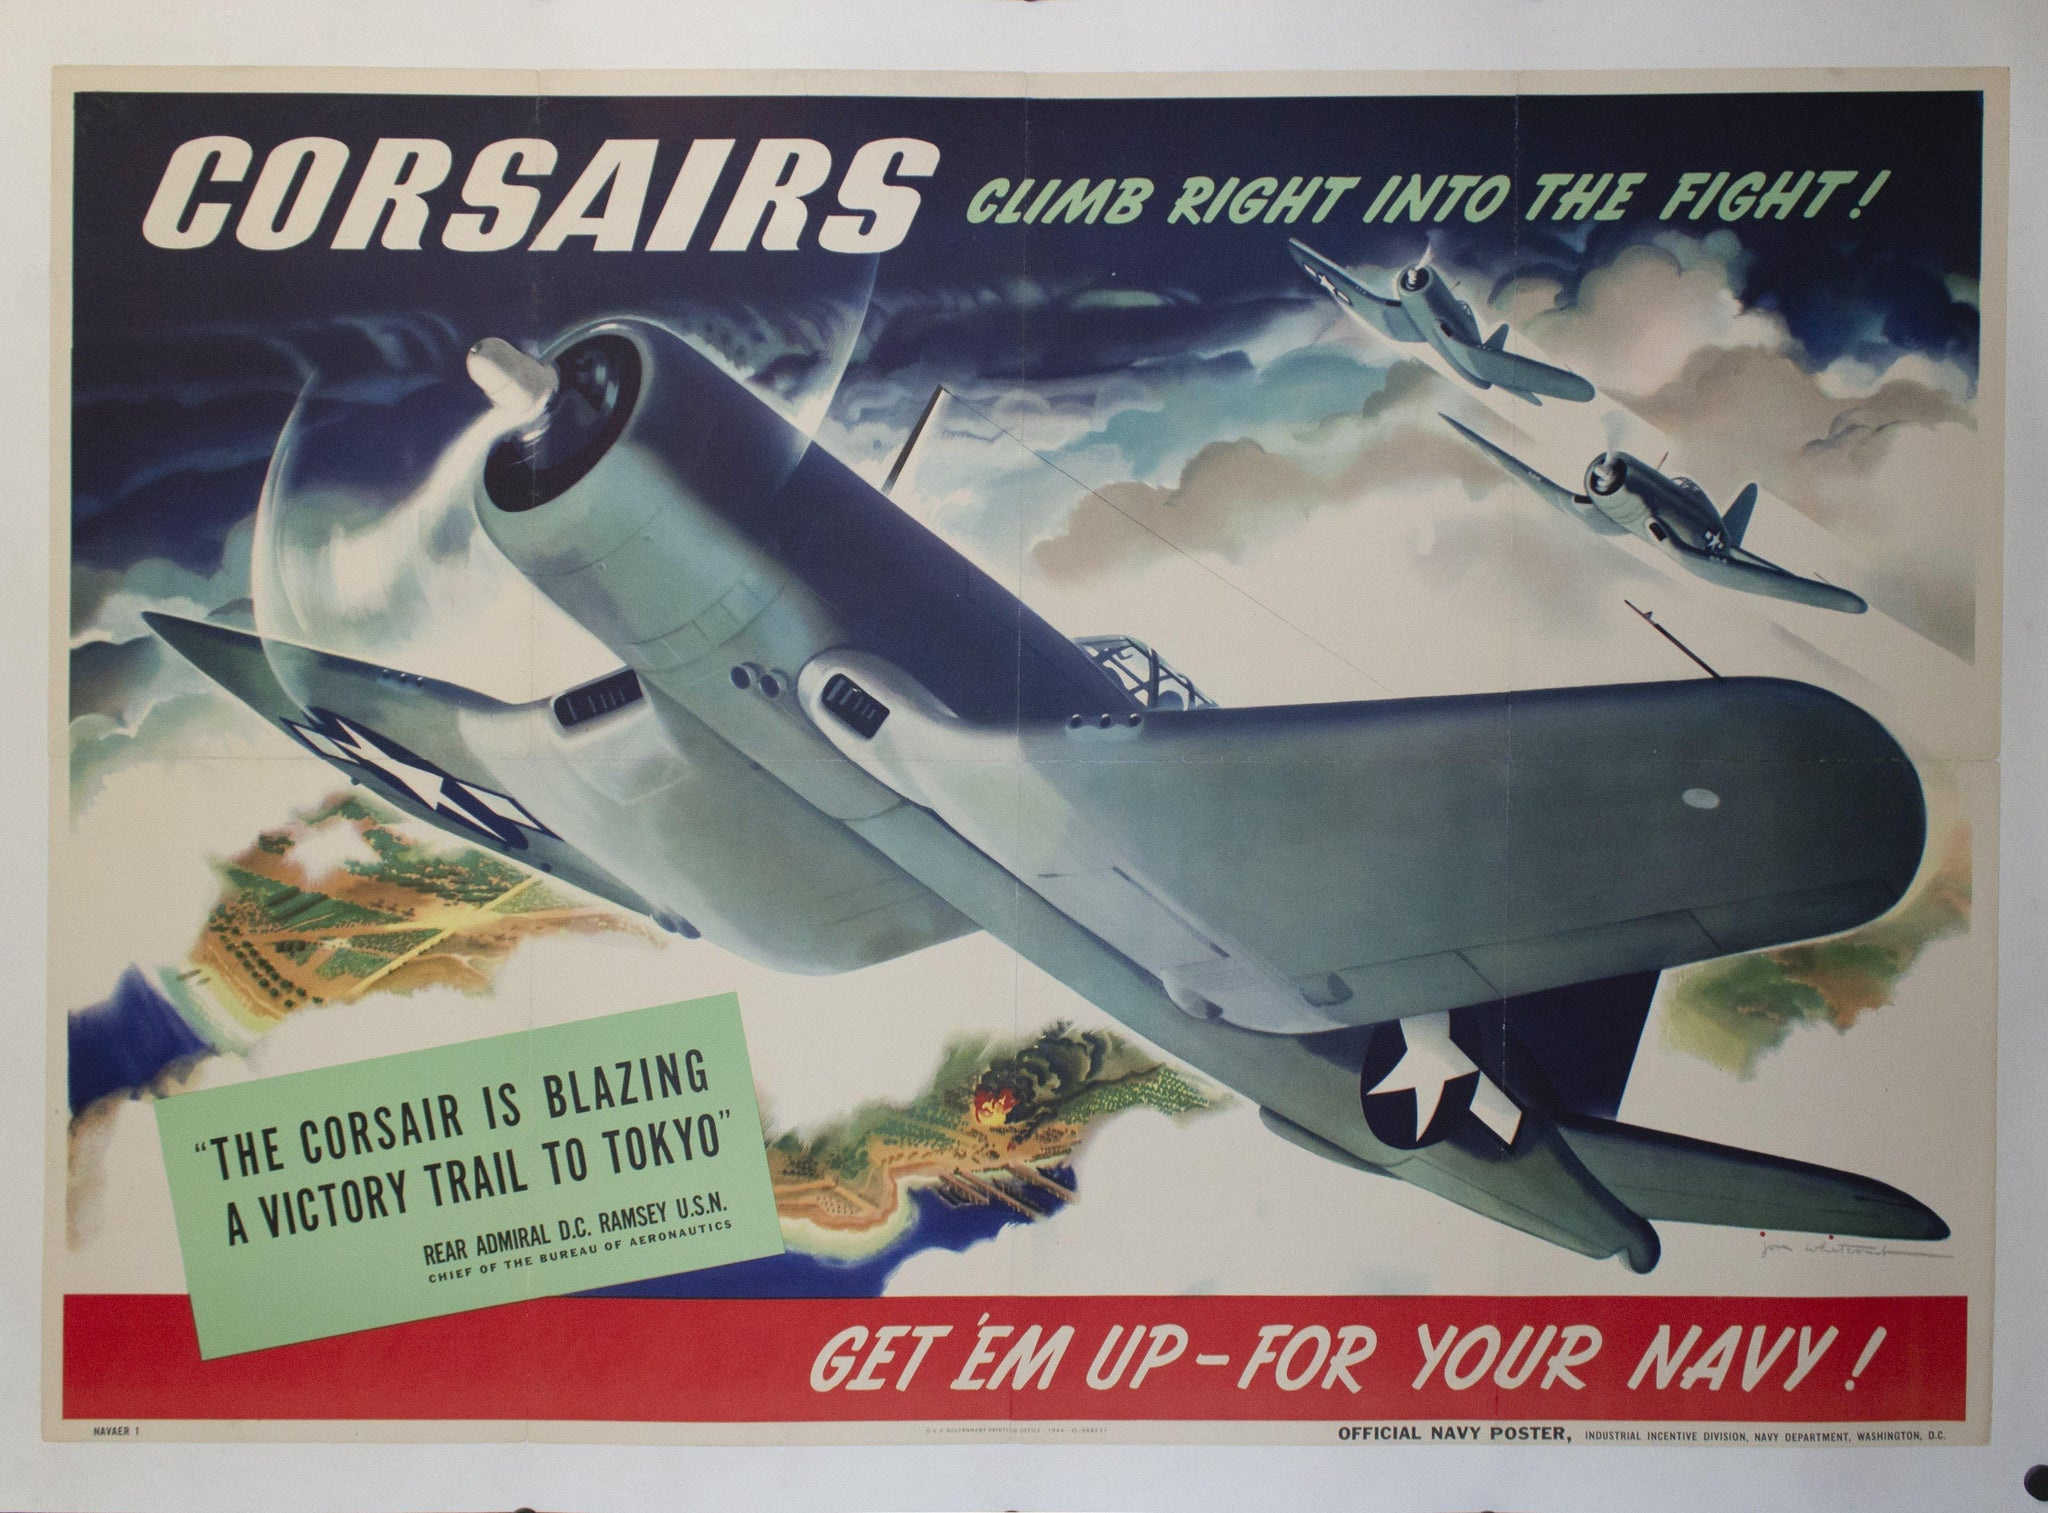 1944 Corsairs | Climb Right Into the Fight! | Get 'Em Up - For Your Navy! by Jon Whitcomb